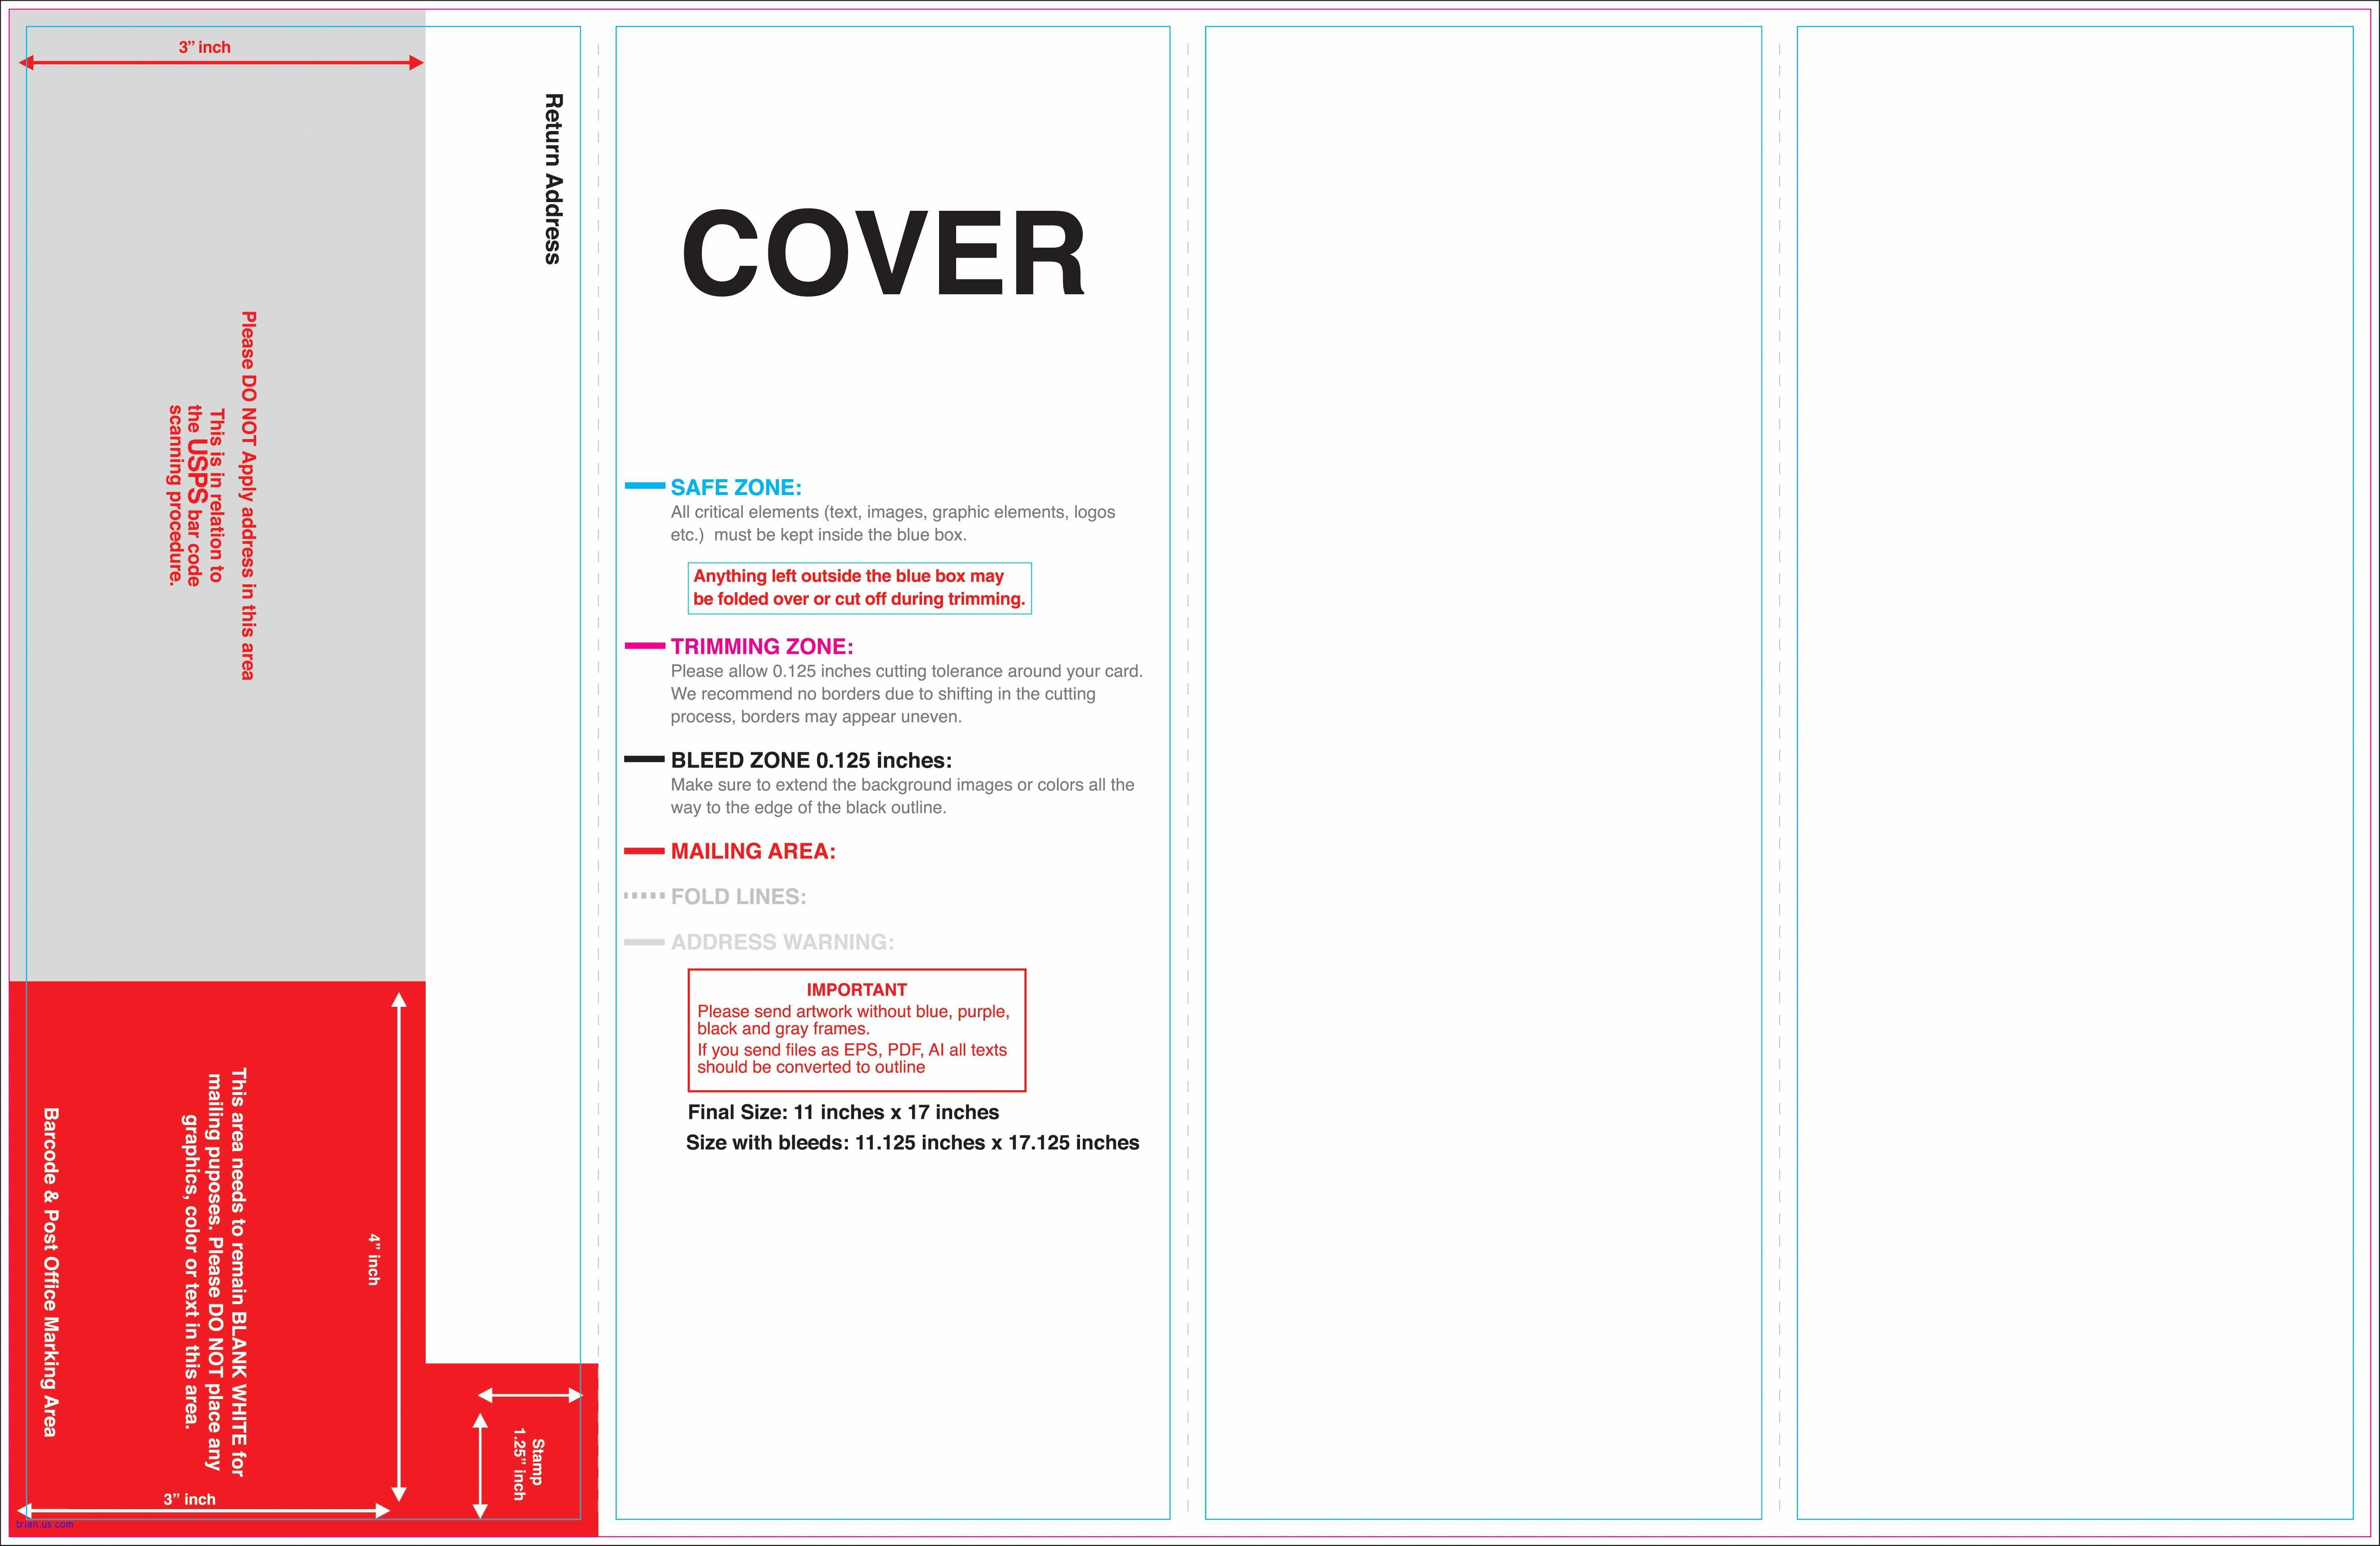 001 Quad Fold Brochure Template Perfect Dreaded Ideas Word With Regard To Quad Fold Brochure In 2020 Trifold Brochure Template Brochure Template Free Brochure Template